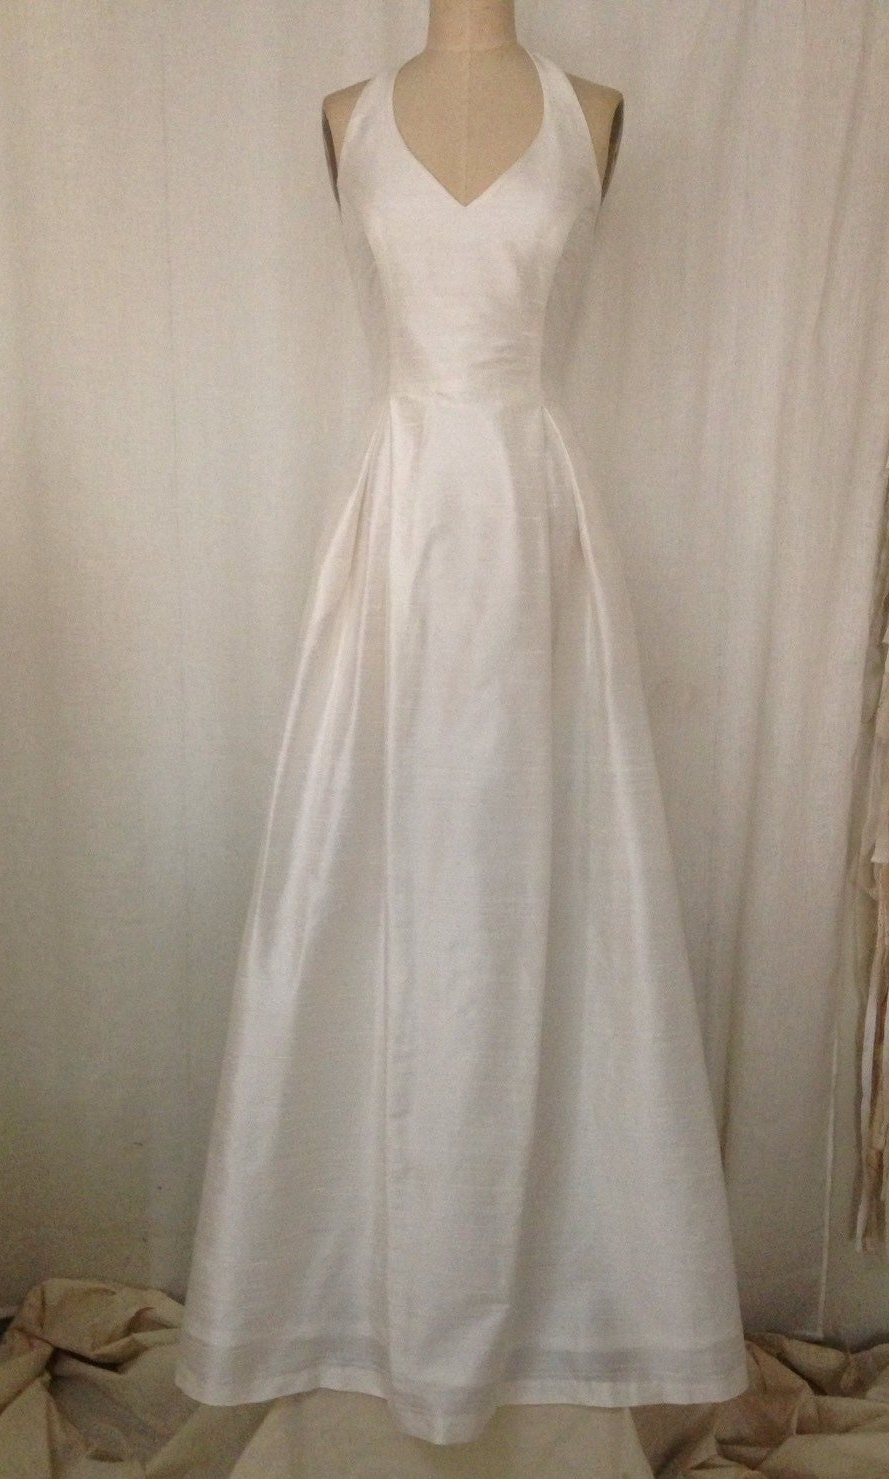 Off White Simple Halter Wedding Gown With Full A Line Skirt